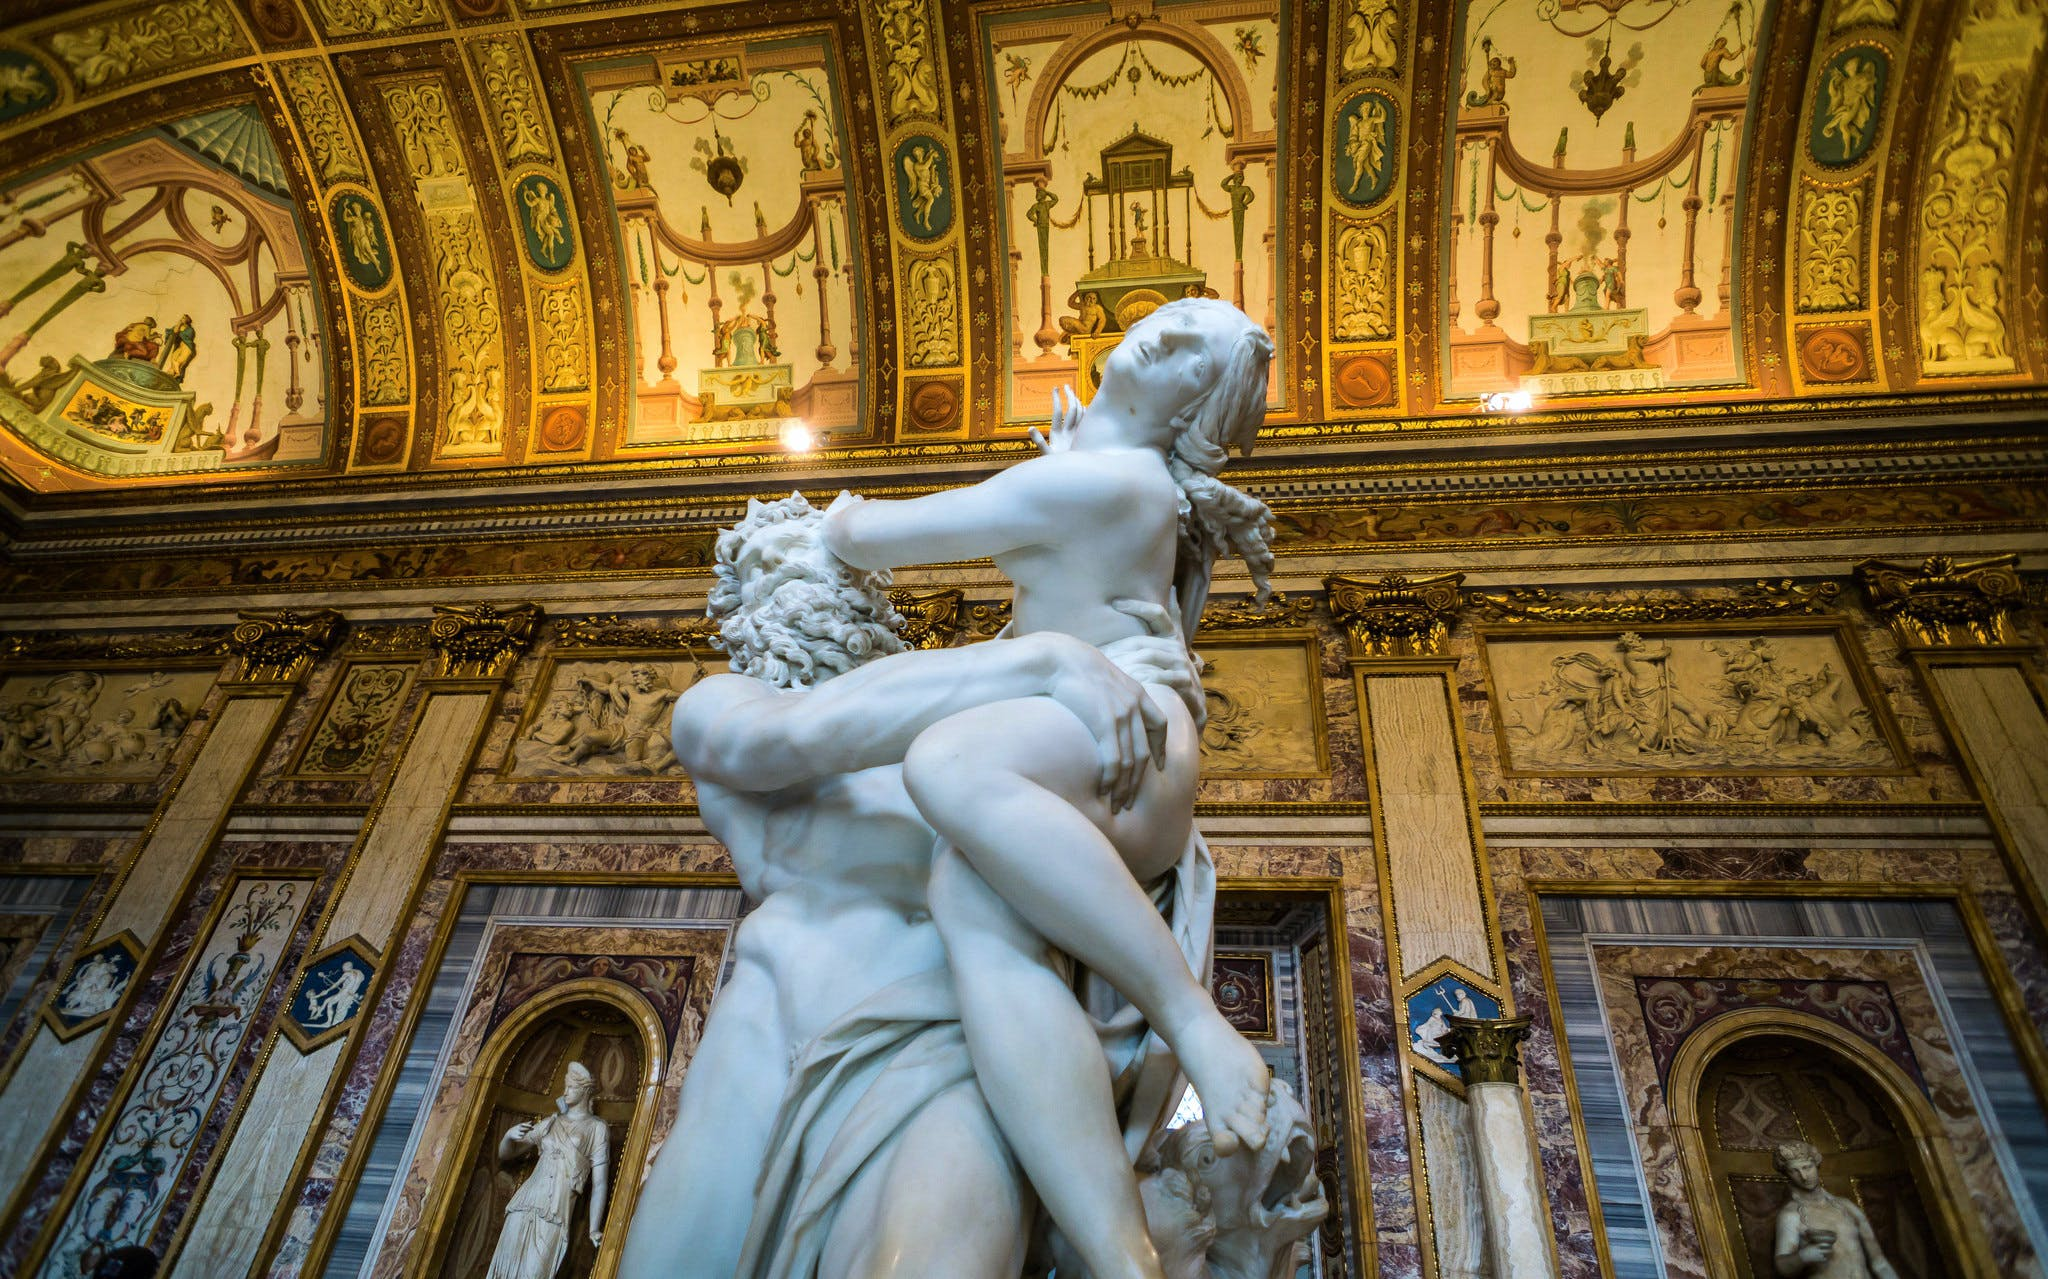 Borghese Gallery and Gardens Half-Day Tour with Transport